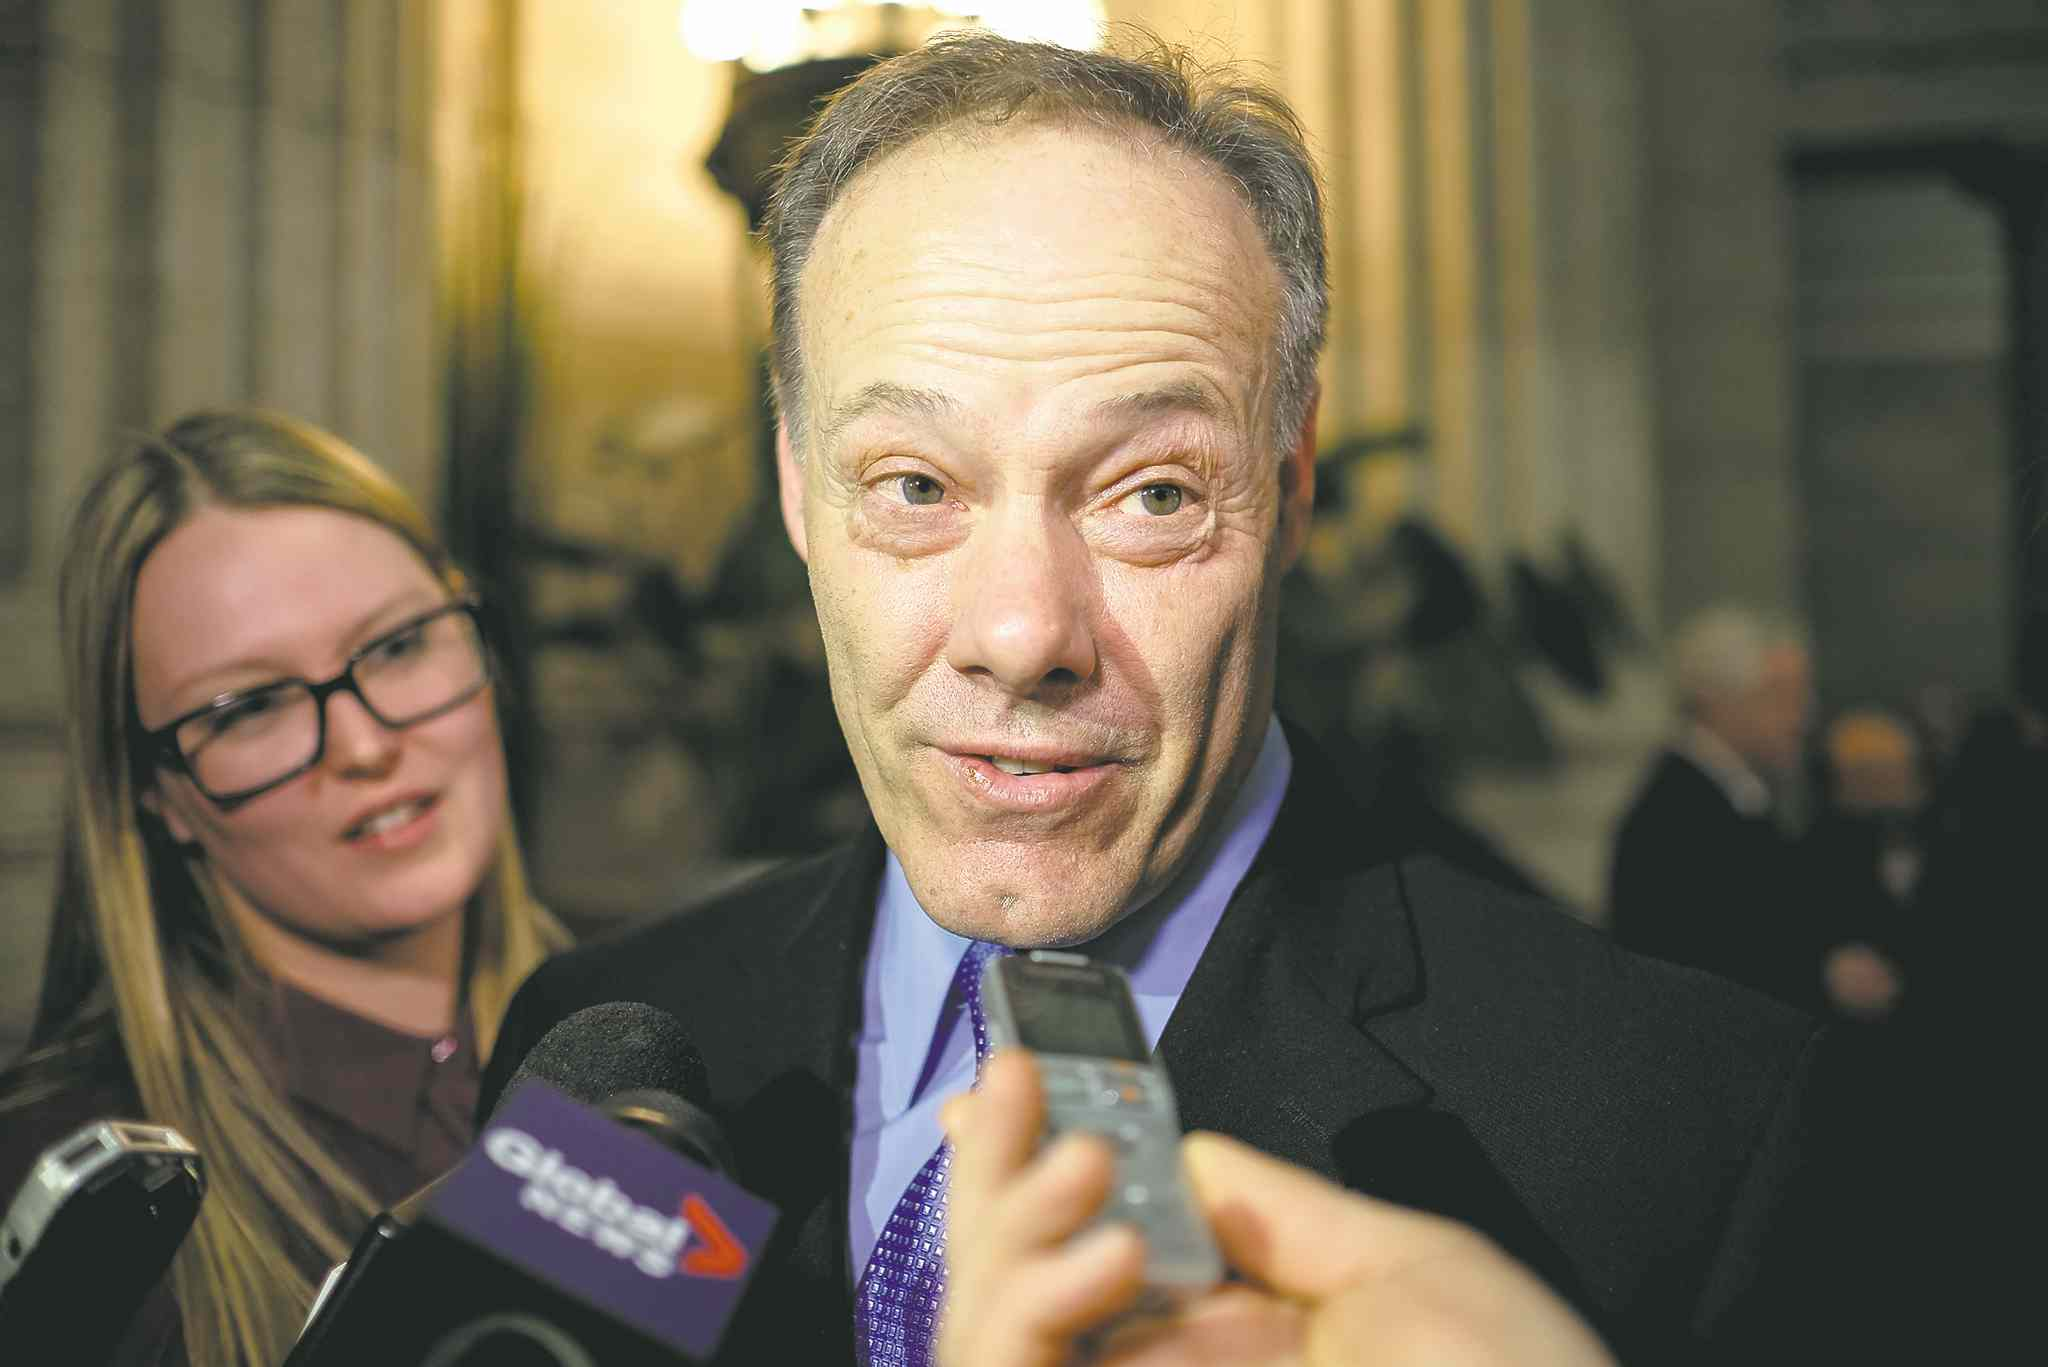 MIKE DEAL / WINNIPEG FREE PRESS Rob Despins, a manager at Standard Aero, will chair the province's 'lean council'.